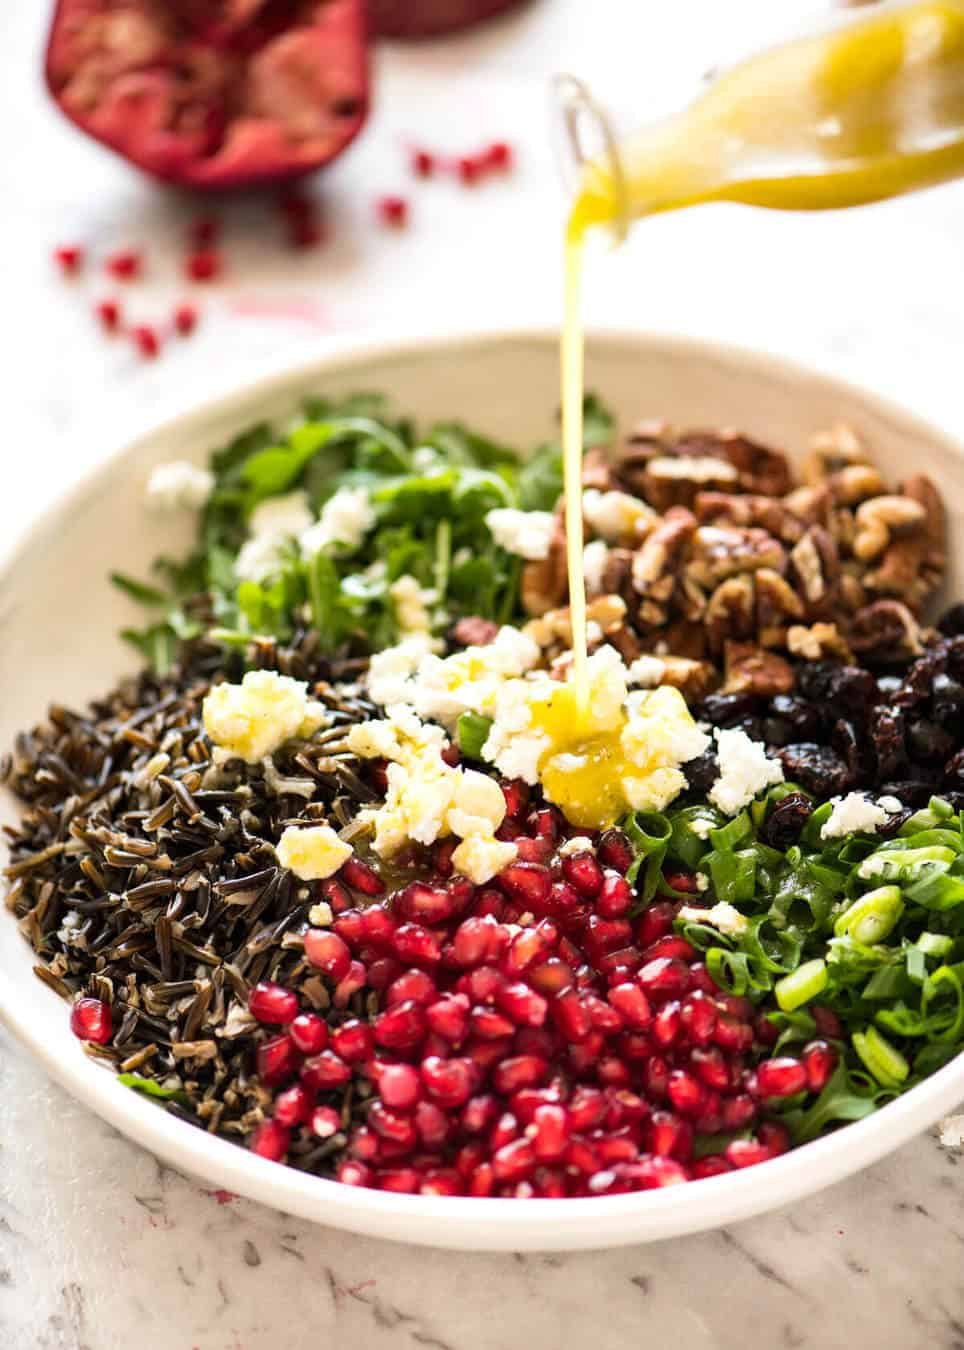 A simple white wine vinaigrette is the perfect Wild Rice Salad dressing. recipetineats.com